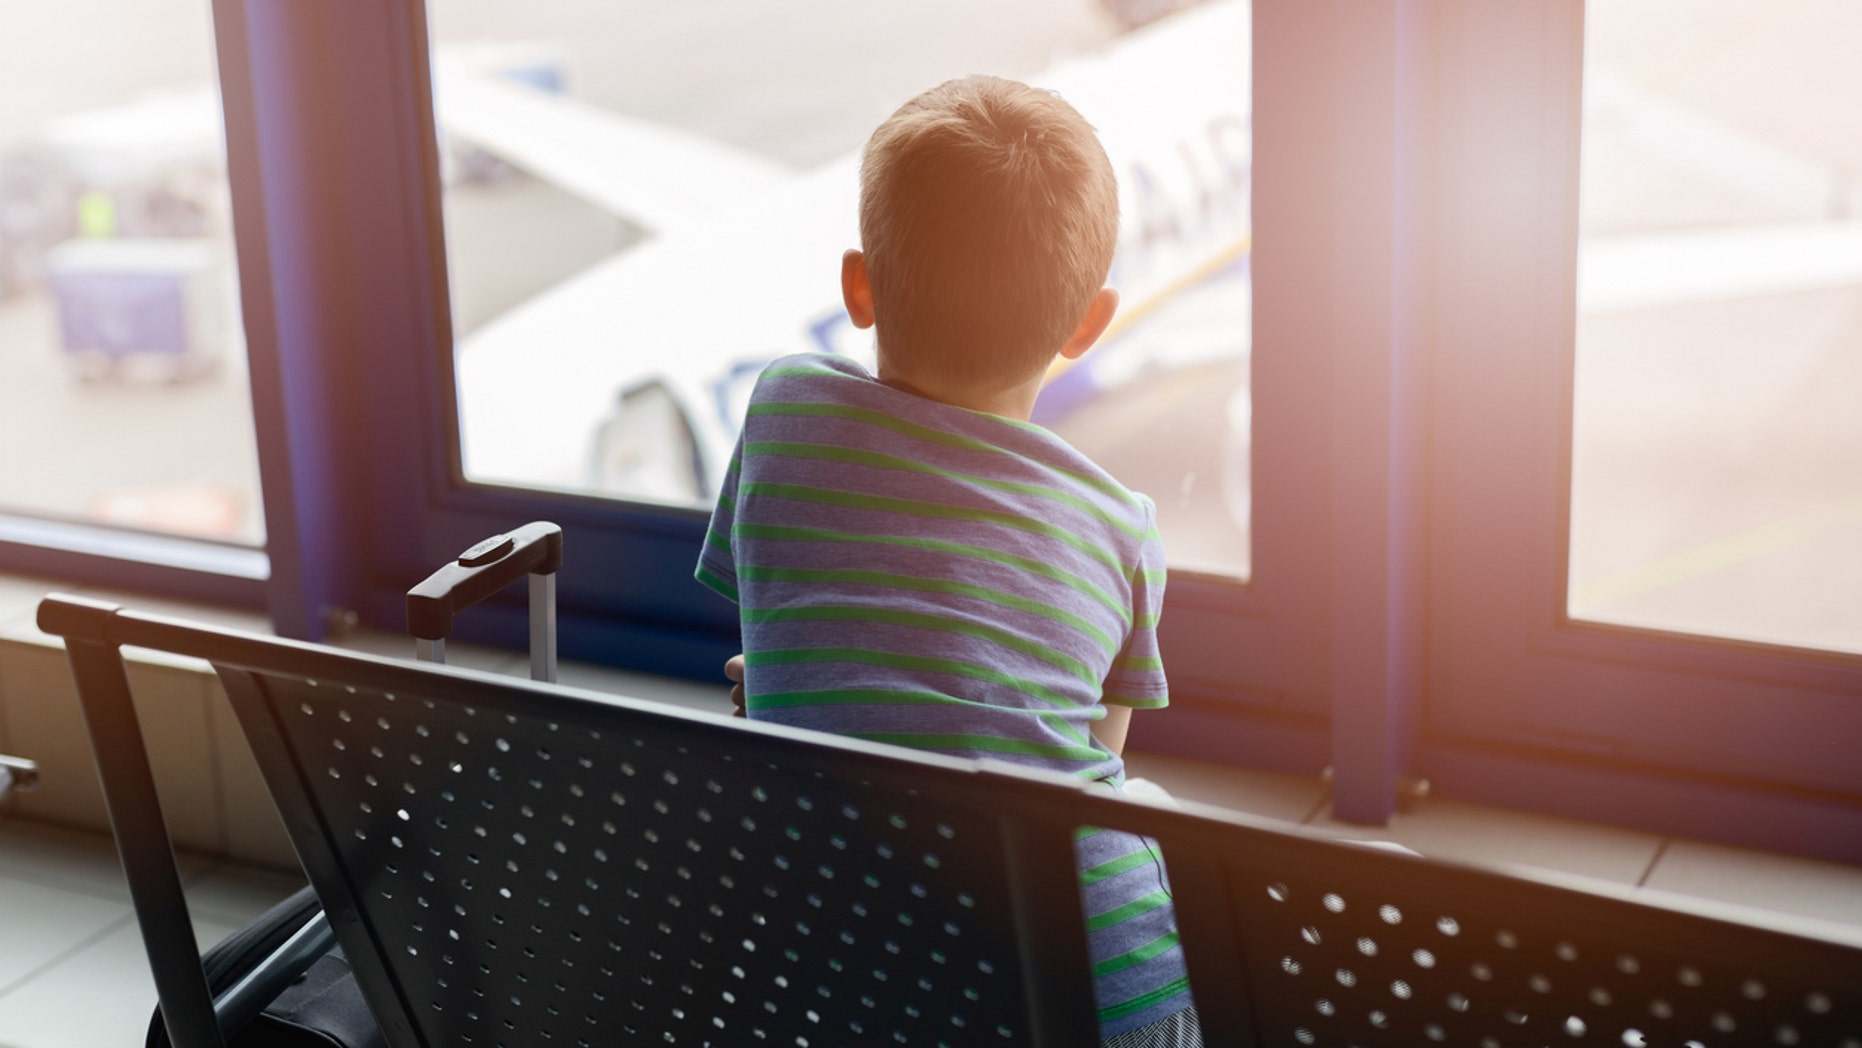 An 11-year-old nearly boarded a plane without a ticket or supervision.